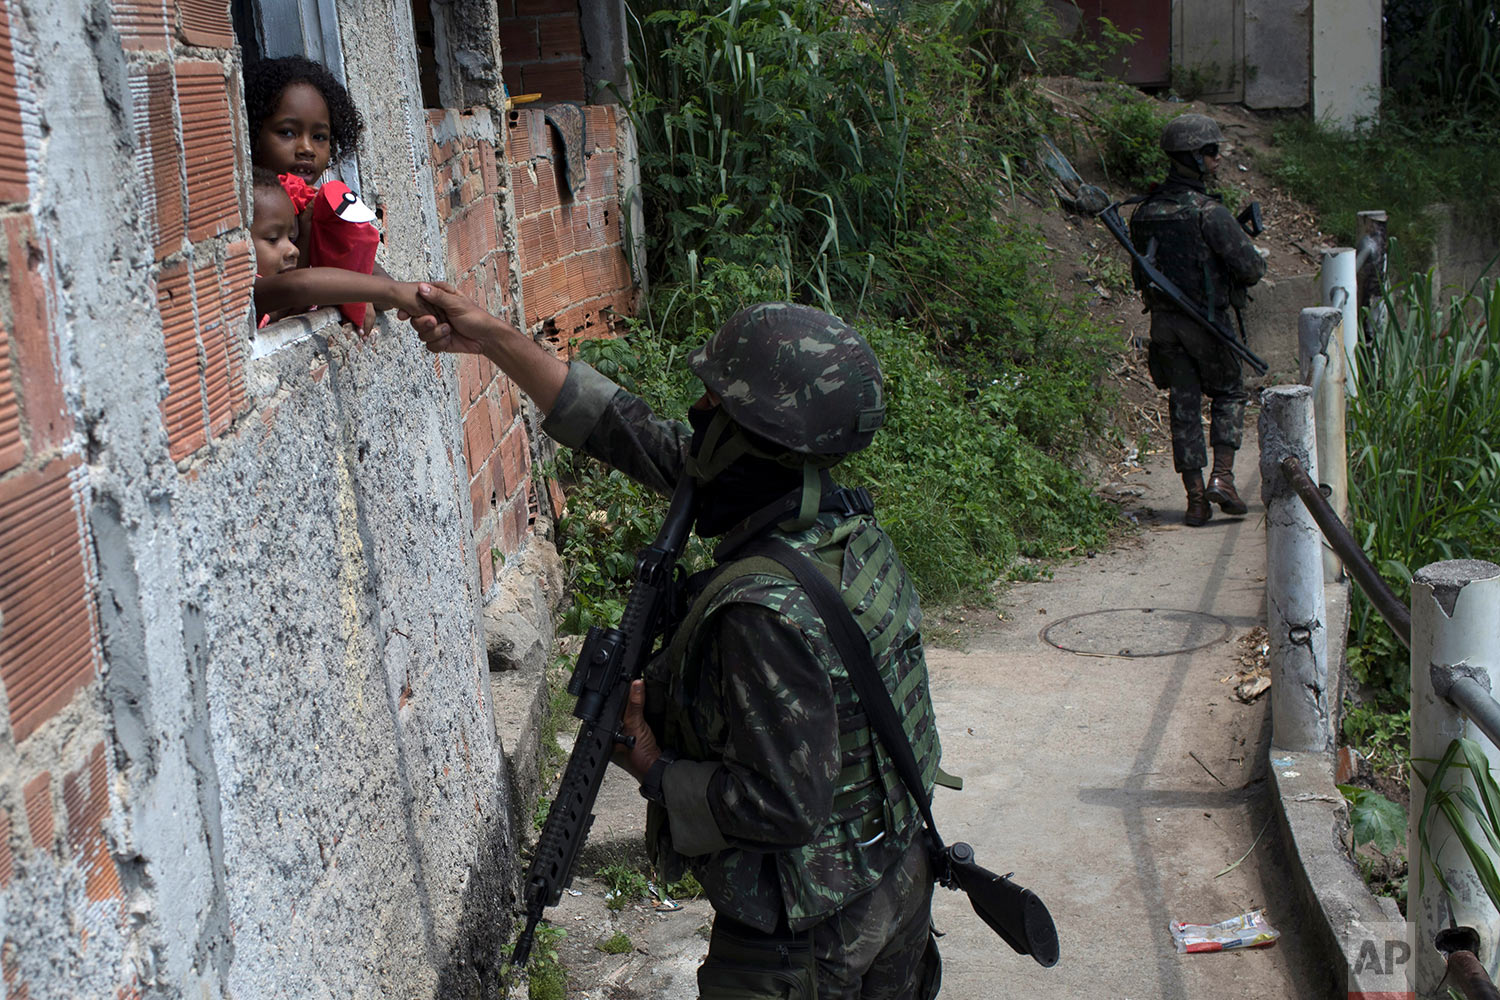 A soldier shakes the hand of a child while on patrol inside the Lins Complex of slums in Rio de Janeiro, Brazil, March 27, 2018. Troops and police are entering the complex in one of the largest operations since the military took control of security. (AP Photo/Leo Correa)